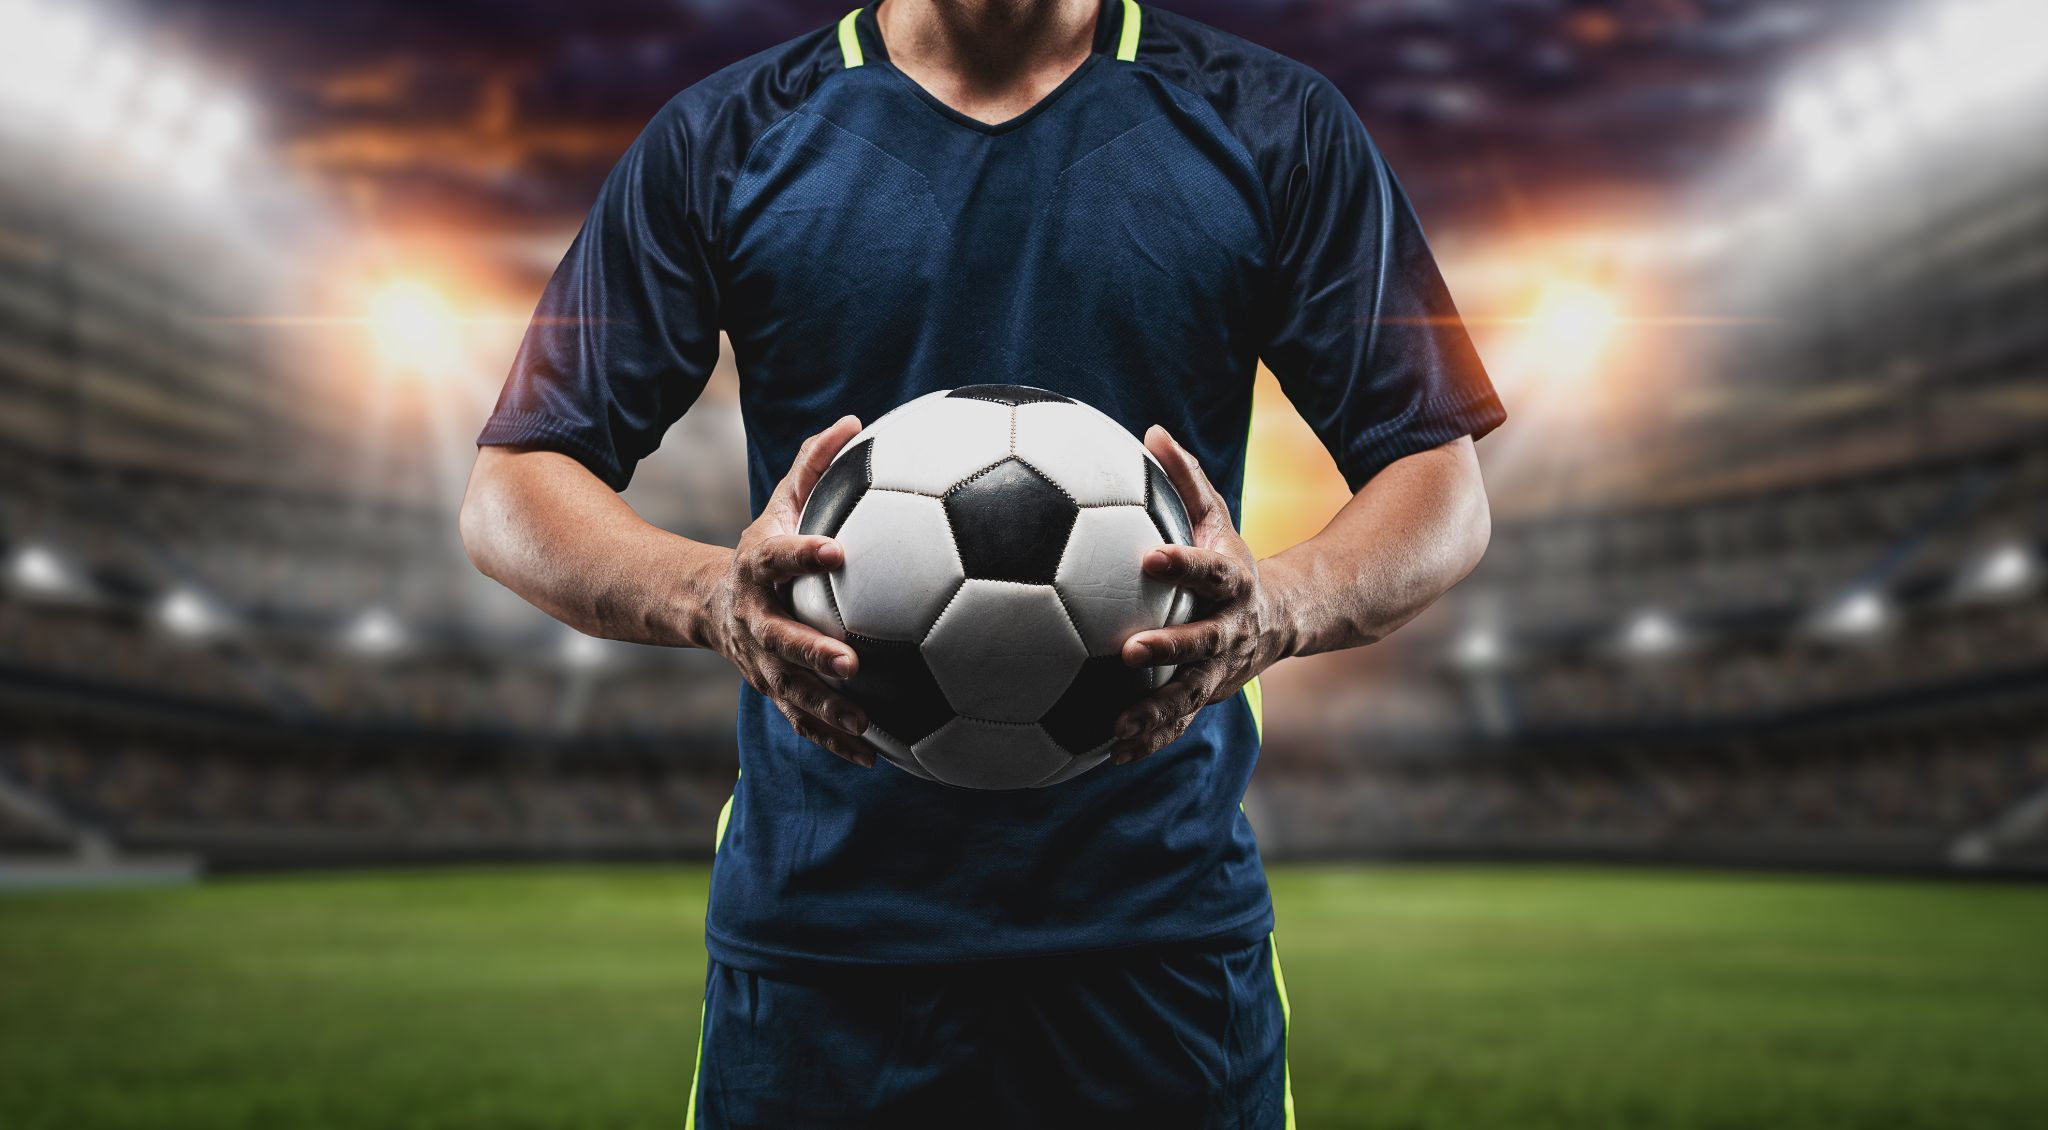 Addiction in Major League Soccer: How Injured Professional Soccer Players Are Becoming Addicted